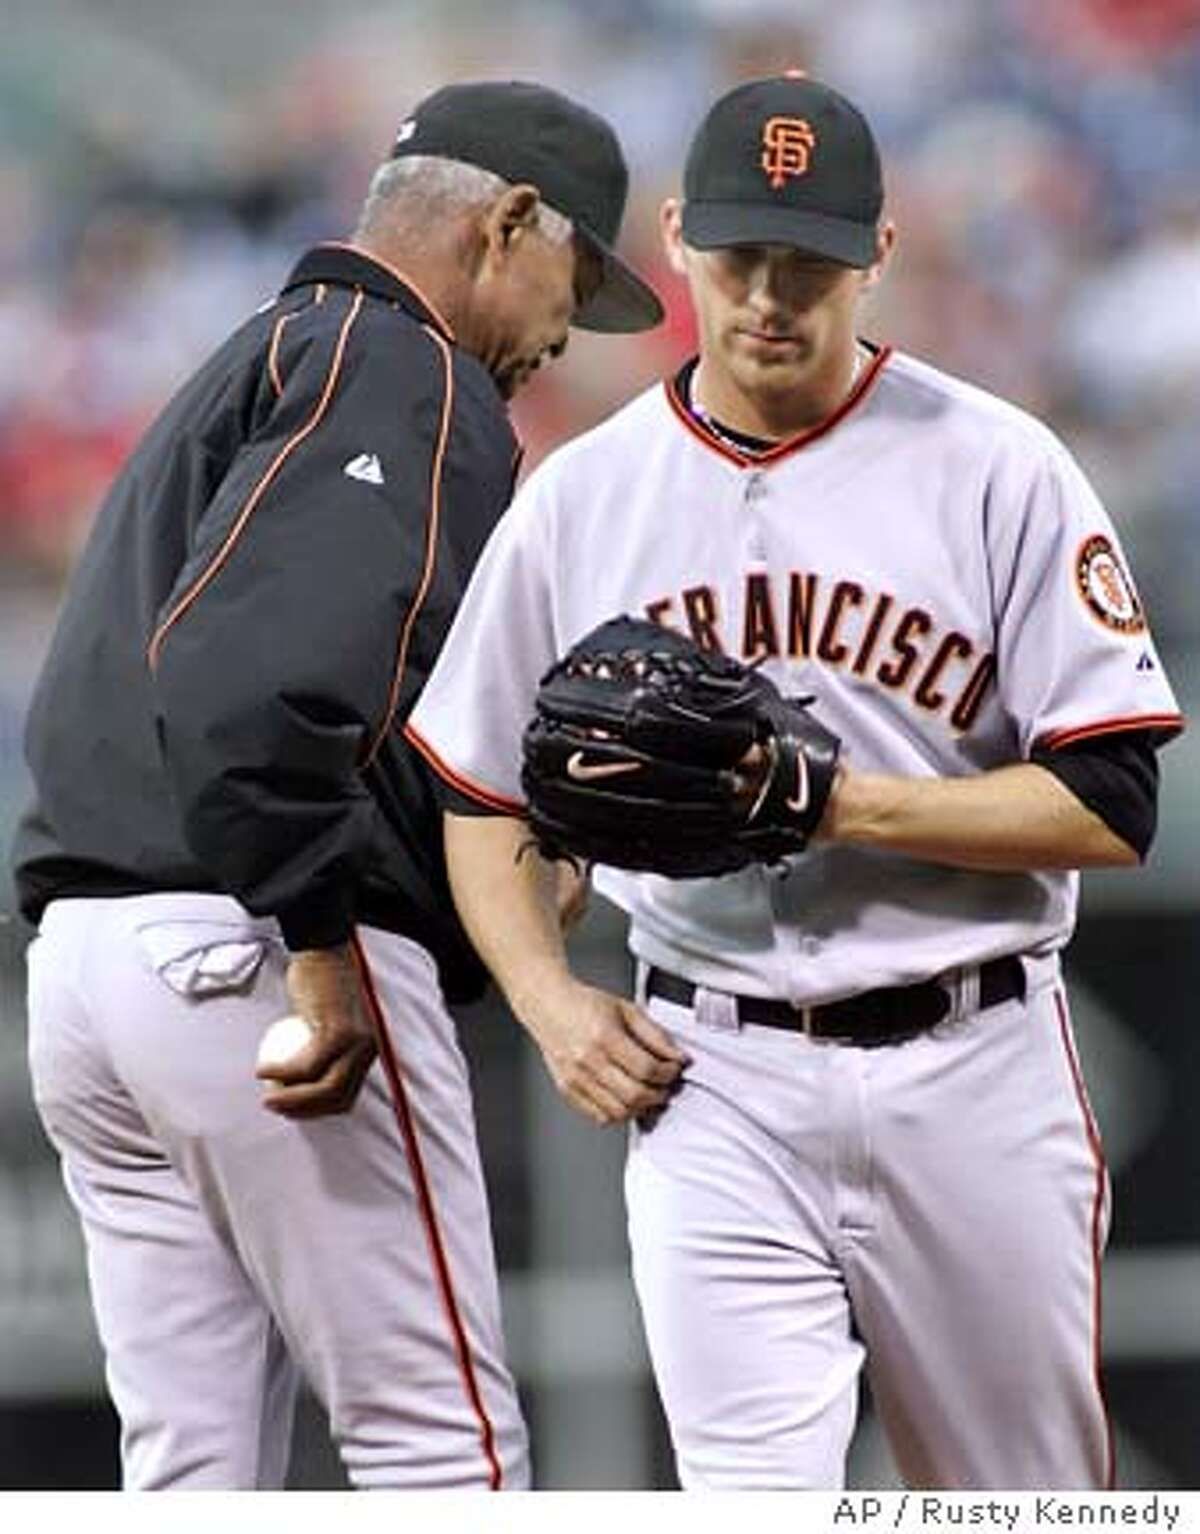 San Francisco Giants pitcher Brad Hennessey walks off the mound after being lifted by manager Felipe Alou in the third inning against the Philadelphia Phillies Thursday,June 2, 2005 in Philadelphia. (AP Photo/Rusty Kennedy)